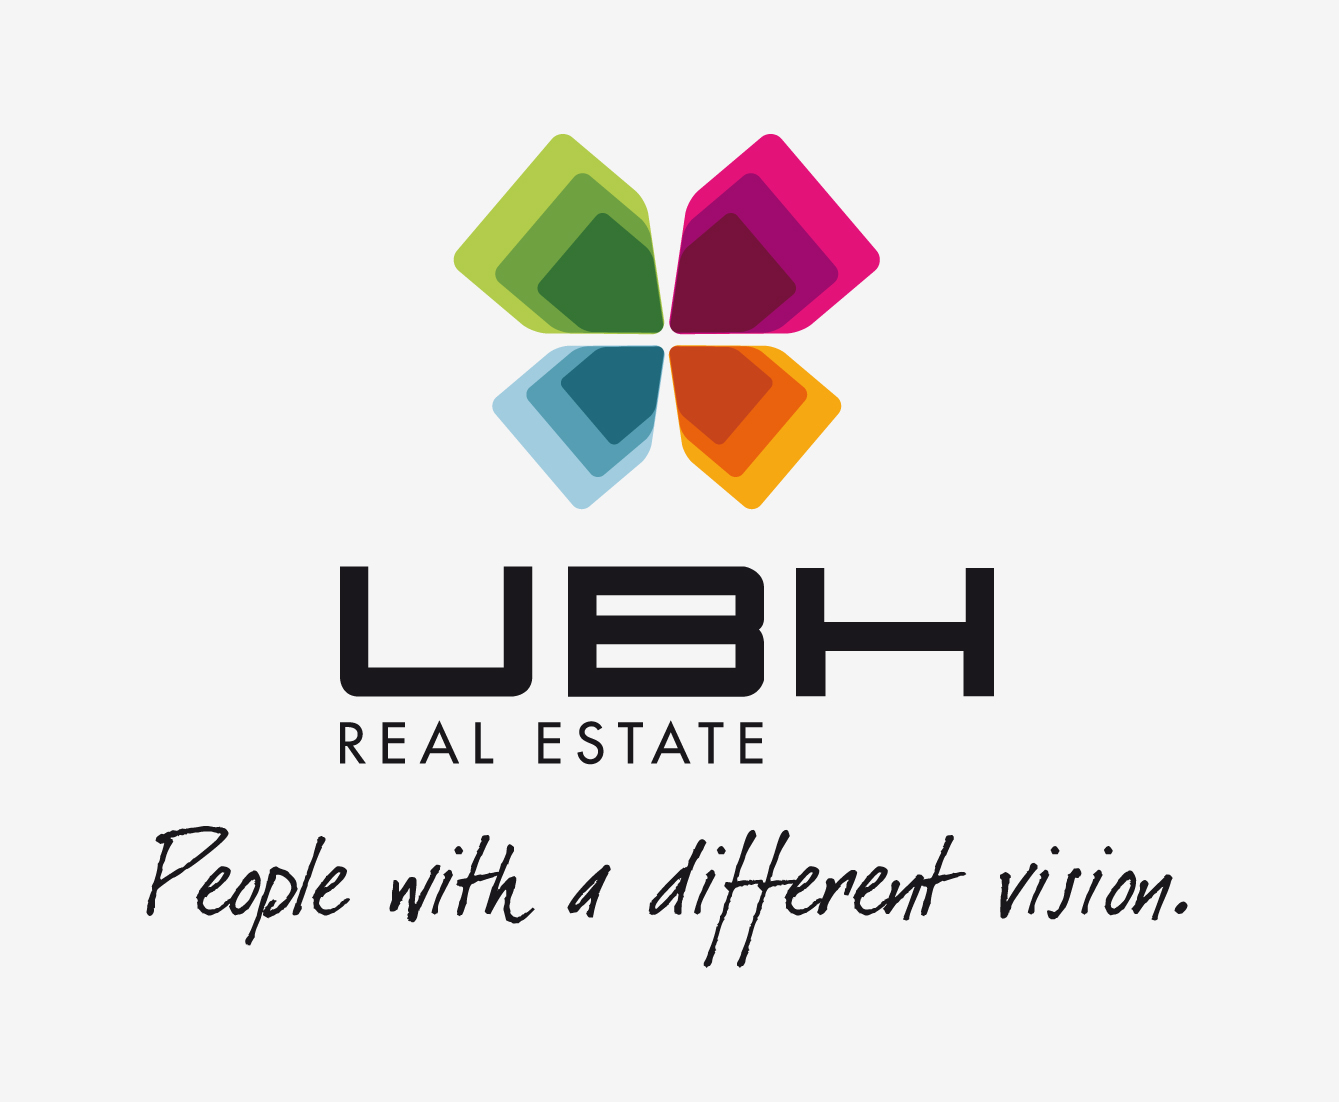 UBH Real Estate